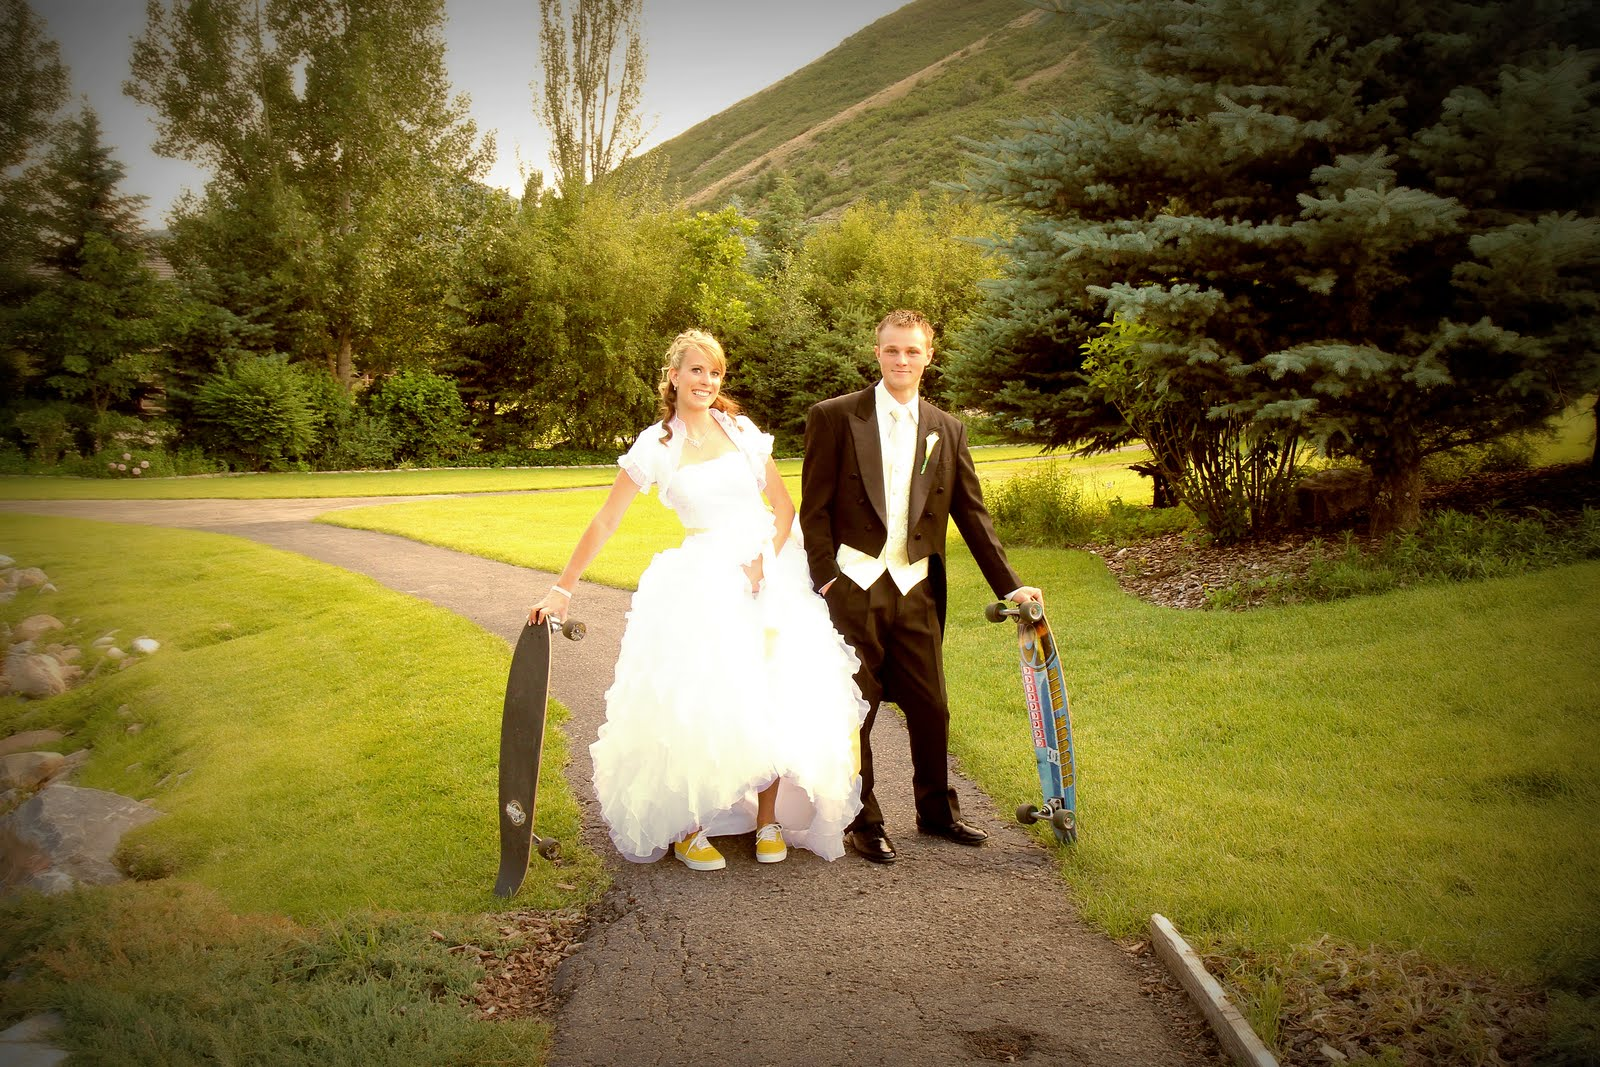 Wedding Dresses Spanish Fork Utah : Spanish fork photography cheapshots family and wedding